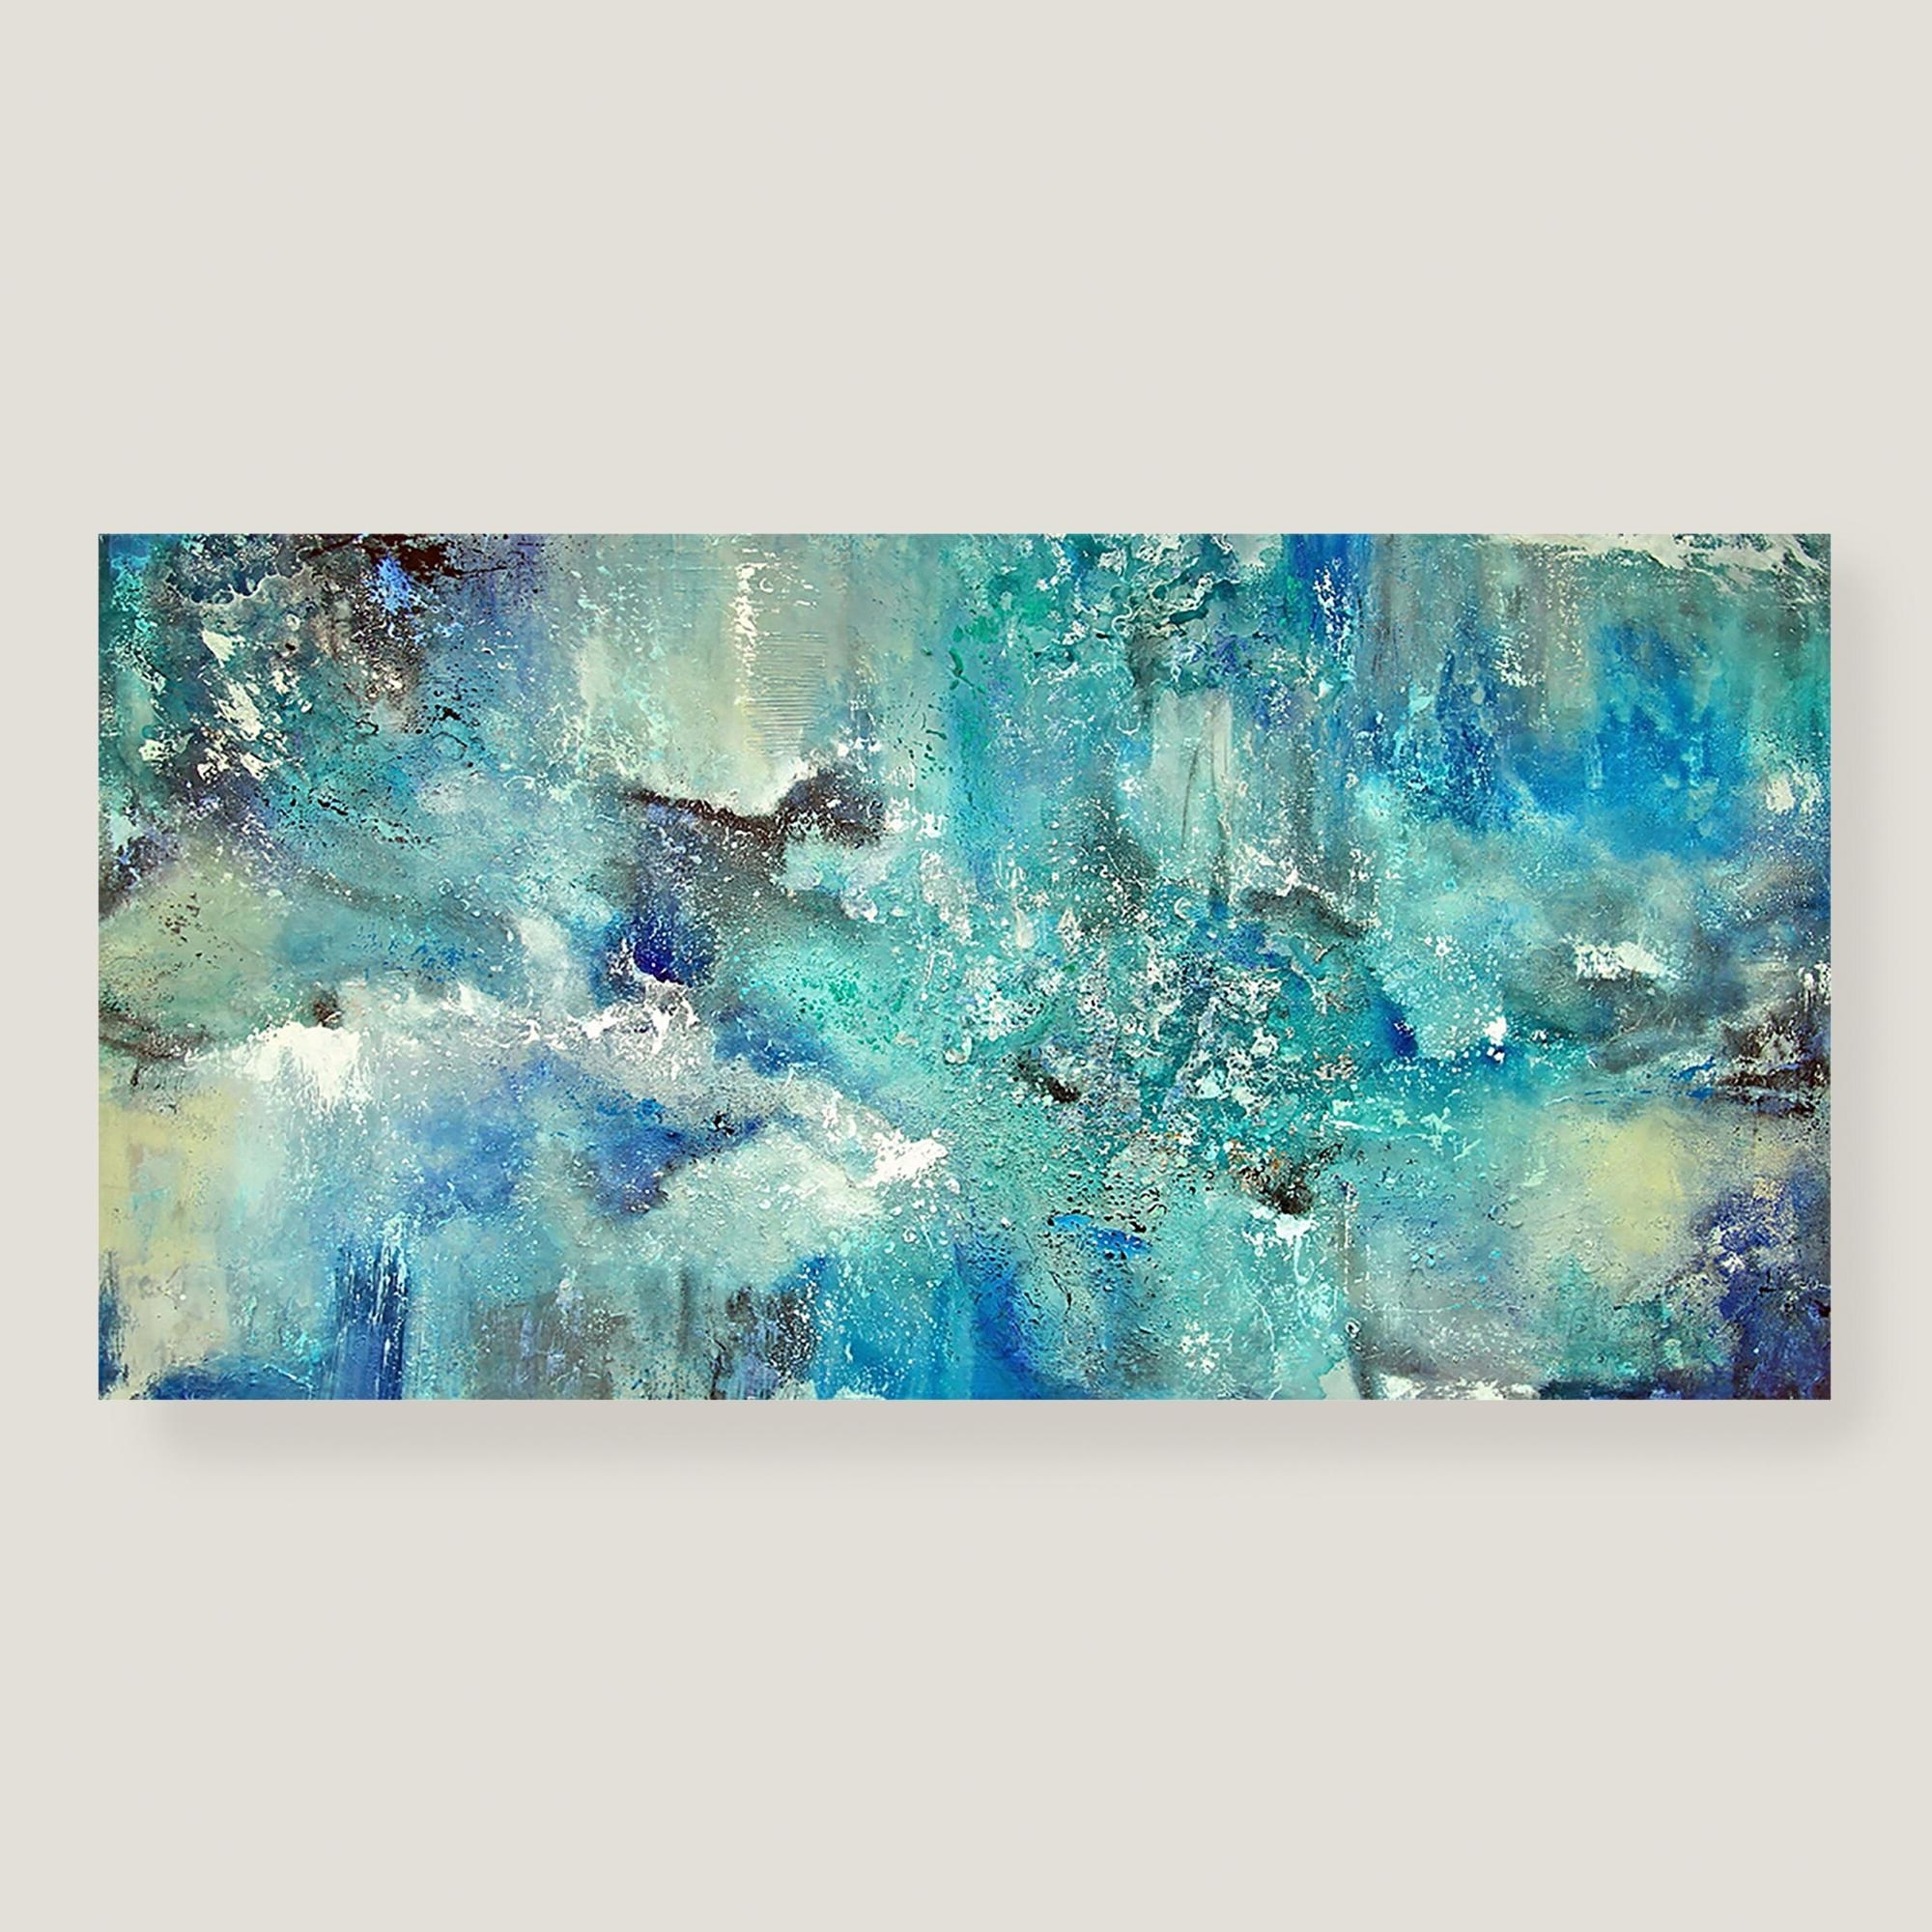 Wall Art: Top 10 Sample Images Blue Canvas Wall Art Blue Floral Within Well Liked Duck Egg Blue Canvas Wall Art (View 15 of 15)